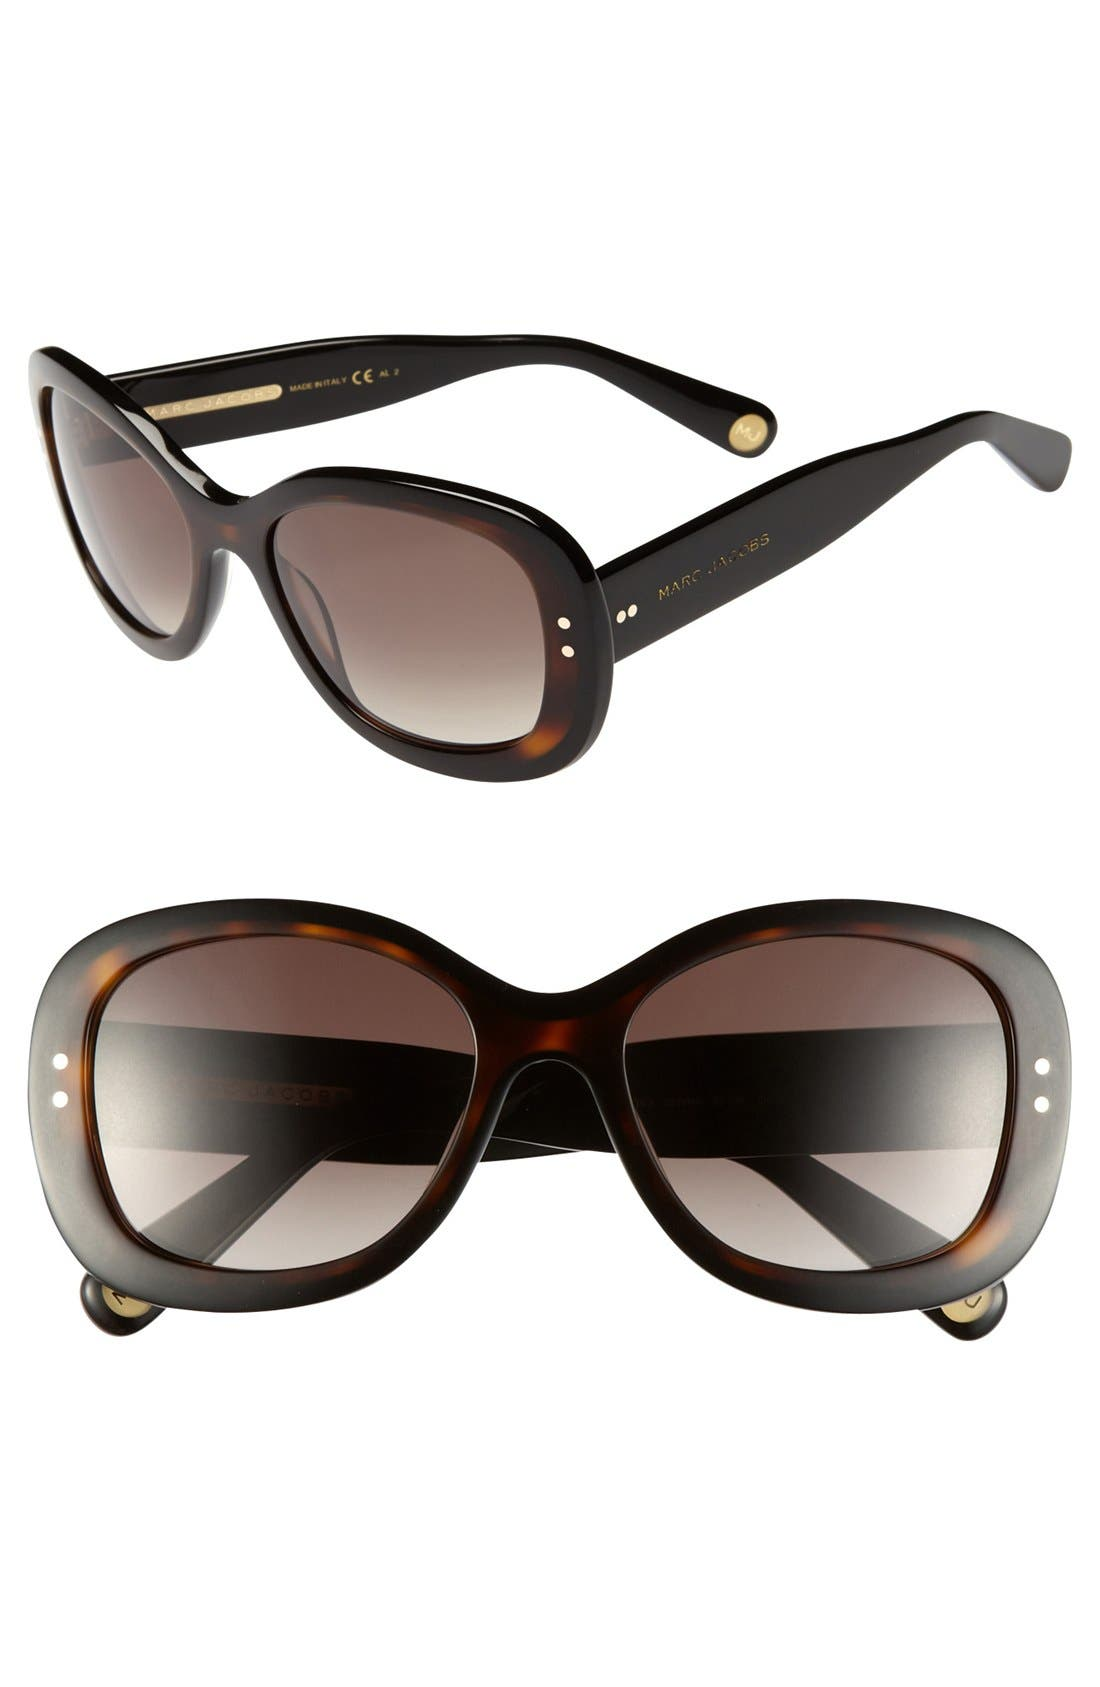 Main Image - MARC JACOBS 55mm Sunglasses